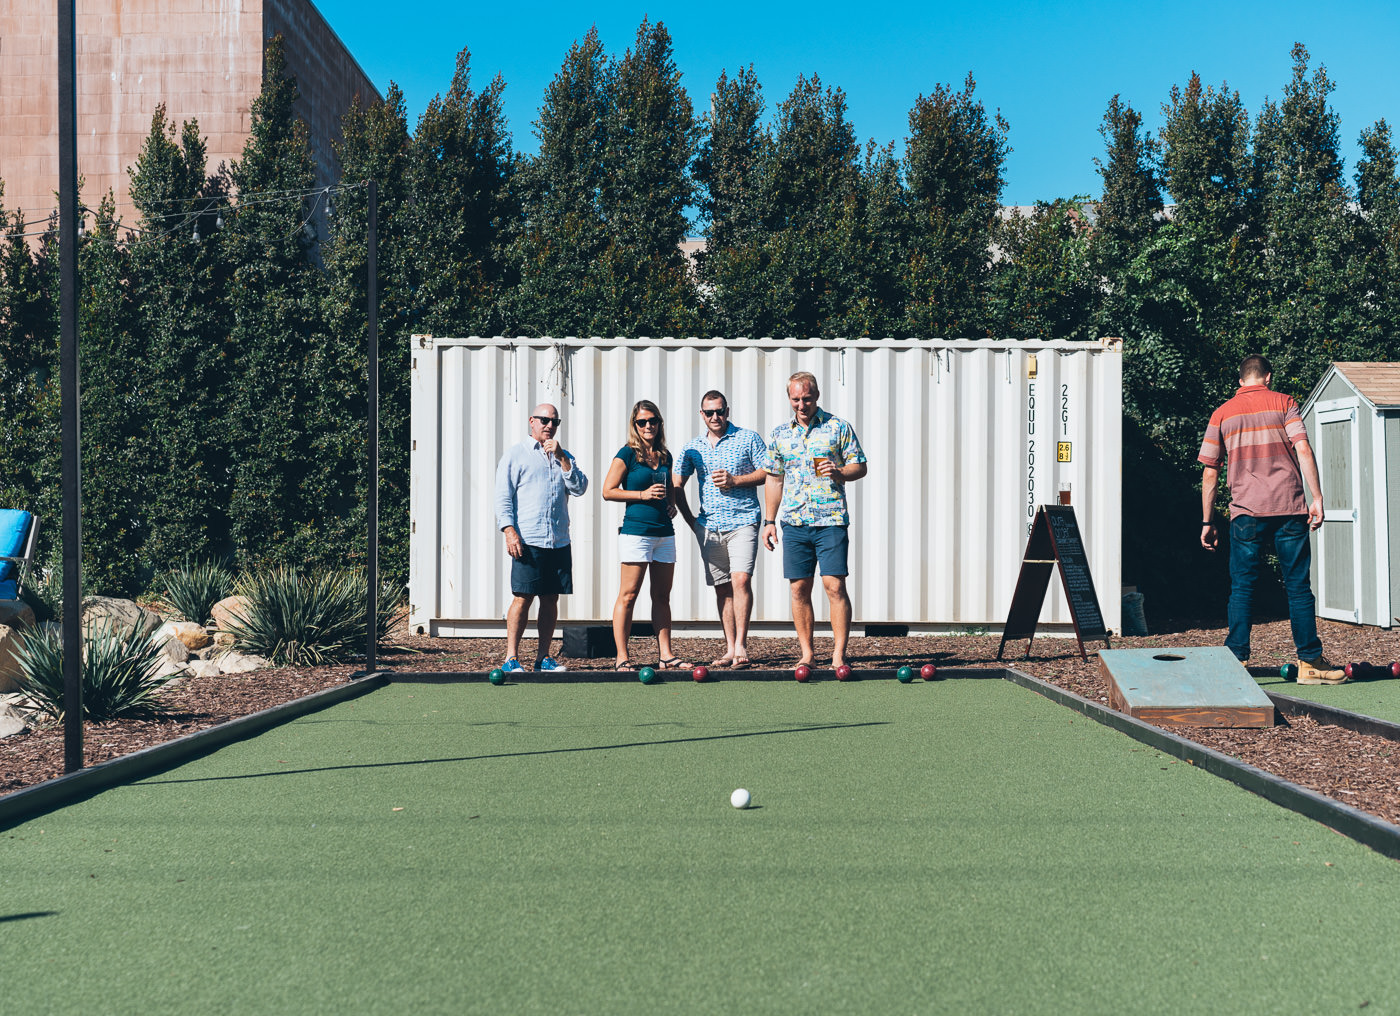 The new Bocce Ball Courts at Pure Order Brewing